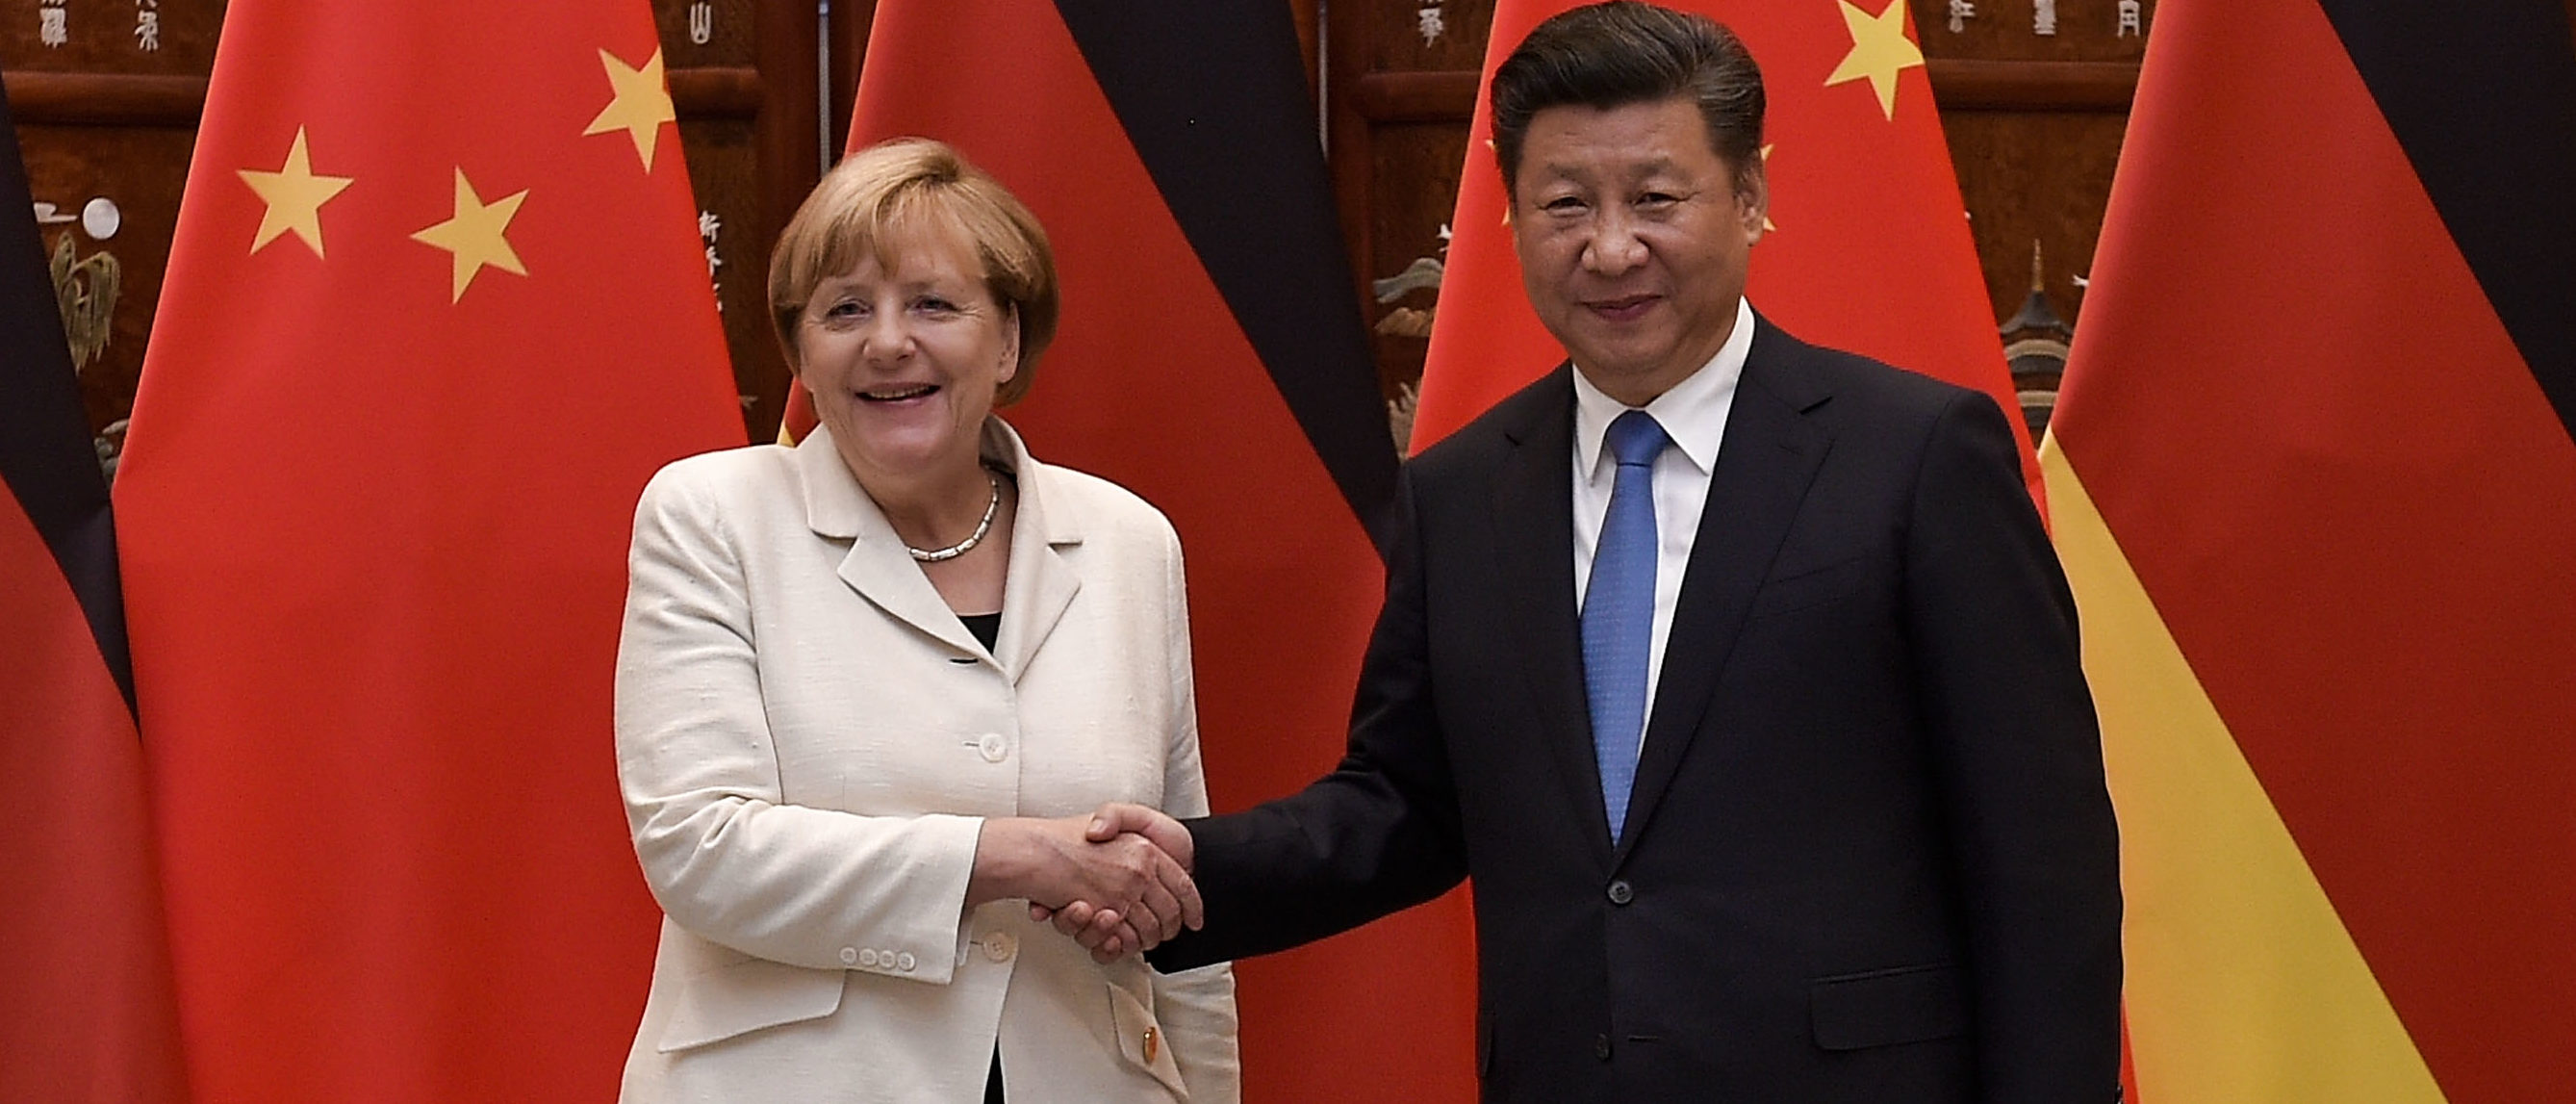 Chinese President Xi Jinping (R) shakes hand with German Chancellor Angela Merkel (L) before their meeting at the West Lake State House on September 5, 2016 in Hangzhou, China. World leaders have gathered in Hangzhou for the 11th G20 Leaders Summit from September 4 to 5. Photo by Etienne Oliveau - Pool/Getty Images)